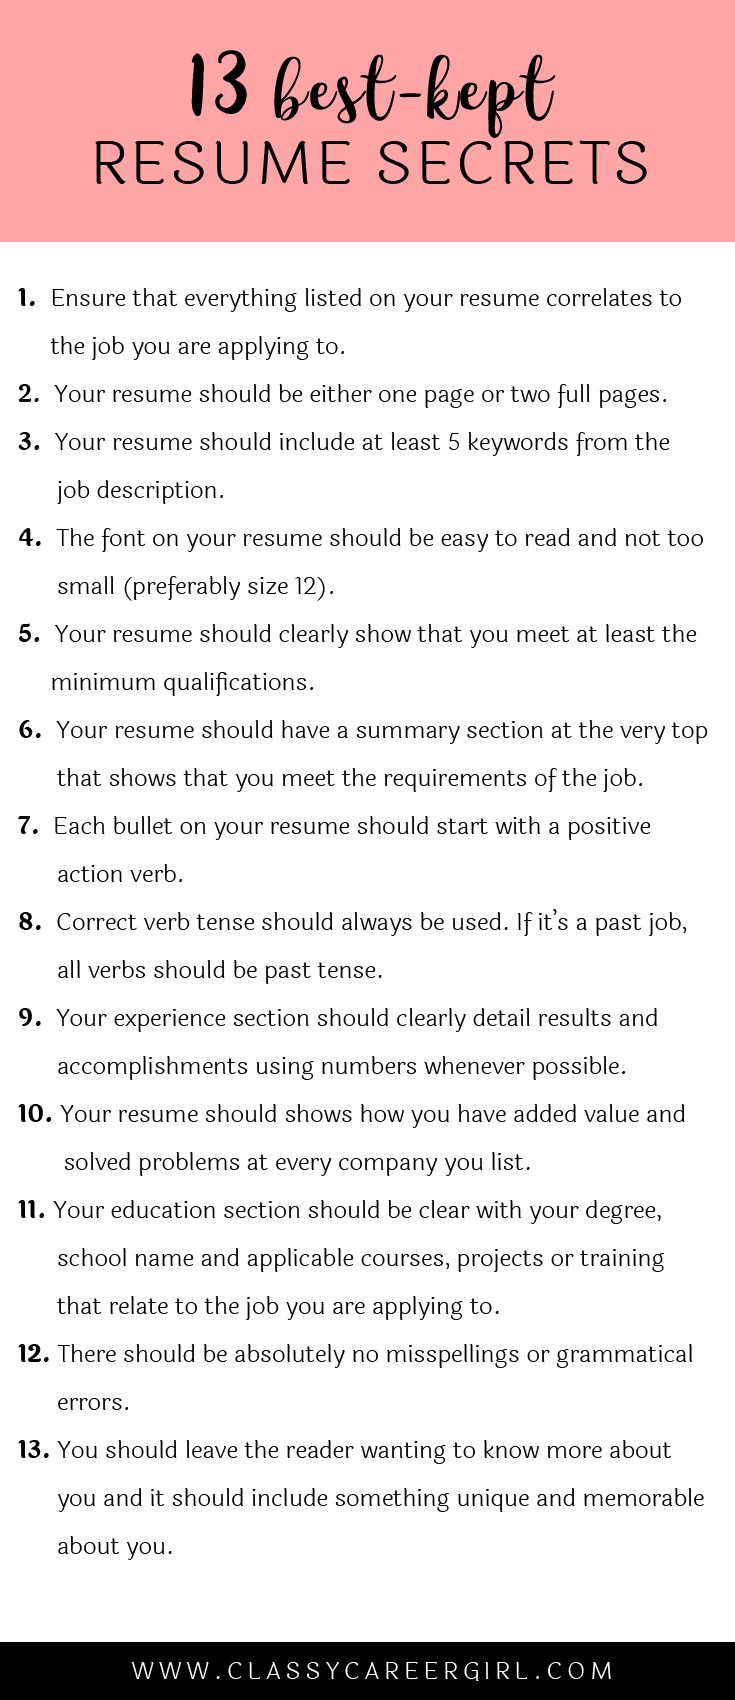 Opposenewapstandardsus  Pleasing  Ideas About Resume On Pinterest  Cv Format Resume Cv And  With Heavenly Some Hiring Managers Will Toss Your Resume Out If You Dont Know These  With Divine How To Make A Professional Resume Also What Is A Functional Resume In Addition How To List Skills On A Resume And Can A Resume Be  Pages As Well As Resume Length Additionally Professional Resume Service From Pinterestcom With Opposenewapstandardsus  Heavenly  Ideas About Resume On Pinterest  Cv Format Resume Cv And  With Divine Some Hiring Managers Will Toss Your Resume Out If You Dont Know These  And Pleasing How To Make A Professional Resume Also What Is A Functional Resume In Addition How To List Skills On A Resume From Pinterestcom